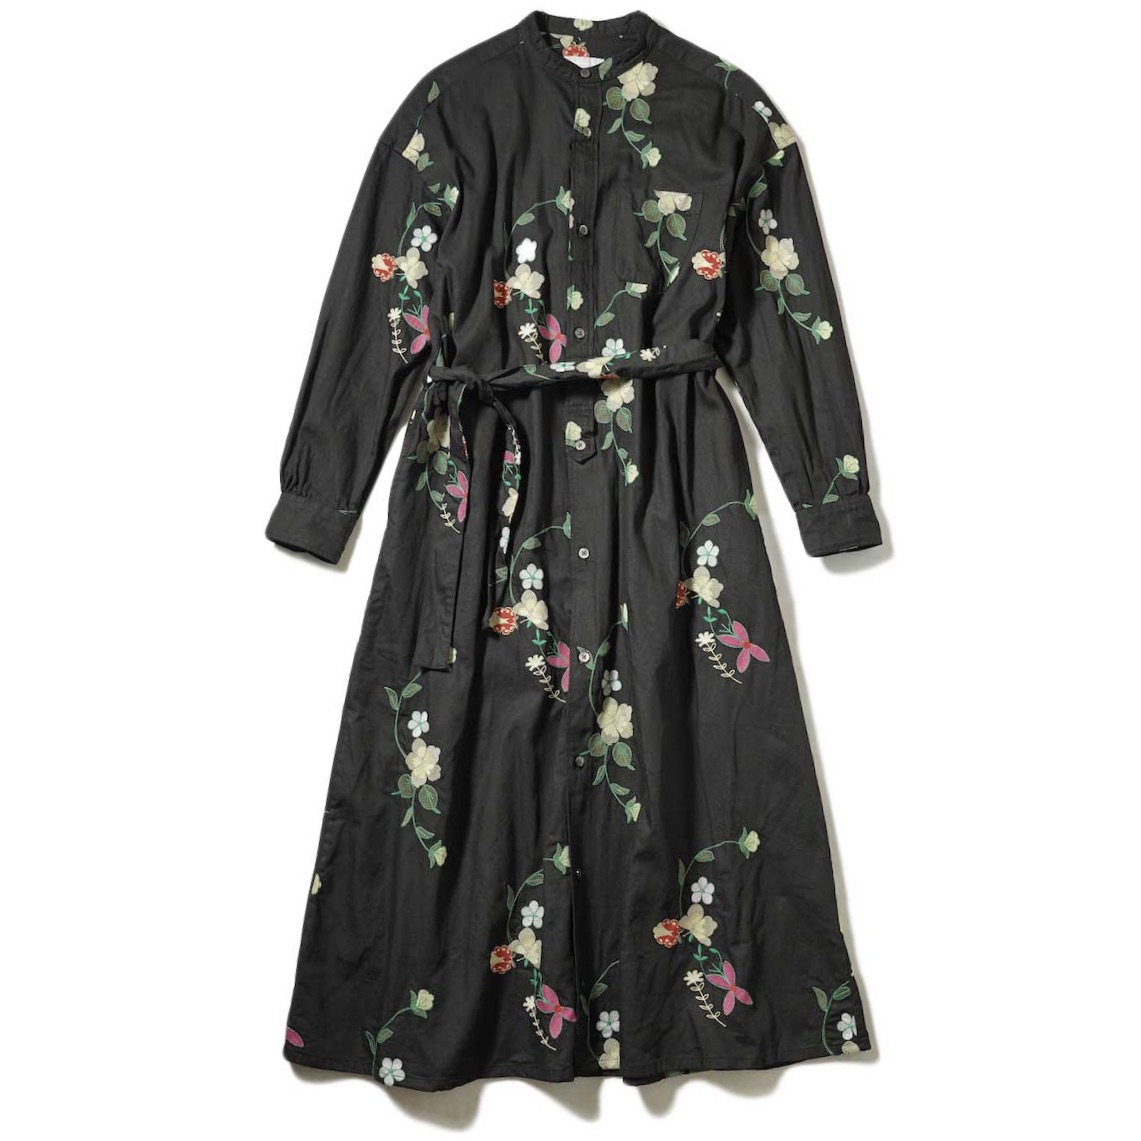 Engineered Garments / Banded Collar Dress (Black with Multi Color Floral Embroidery)